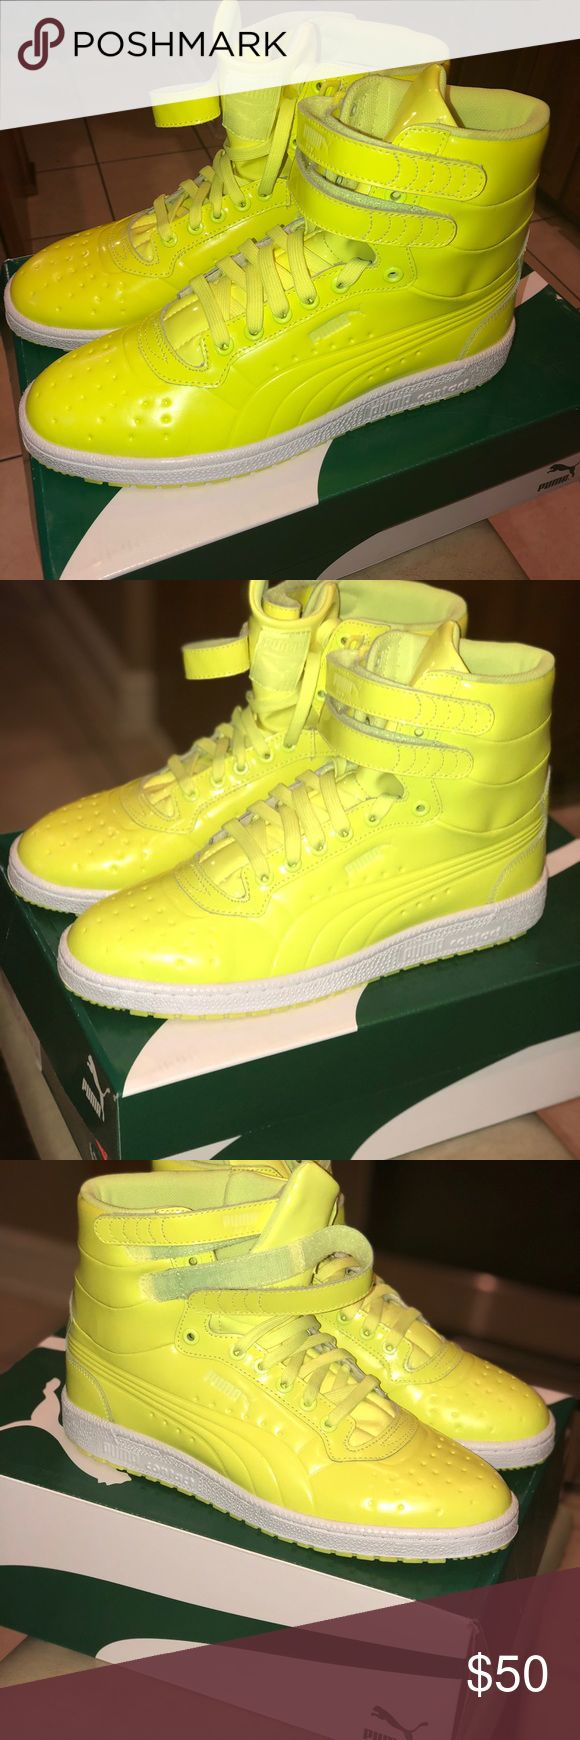 Sky ll Hi Patent Emboss New pair of Puma shoes for boys and men's size 10 NEW  color safety yellow Puma Shoes Sneakers